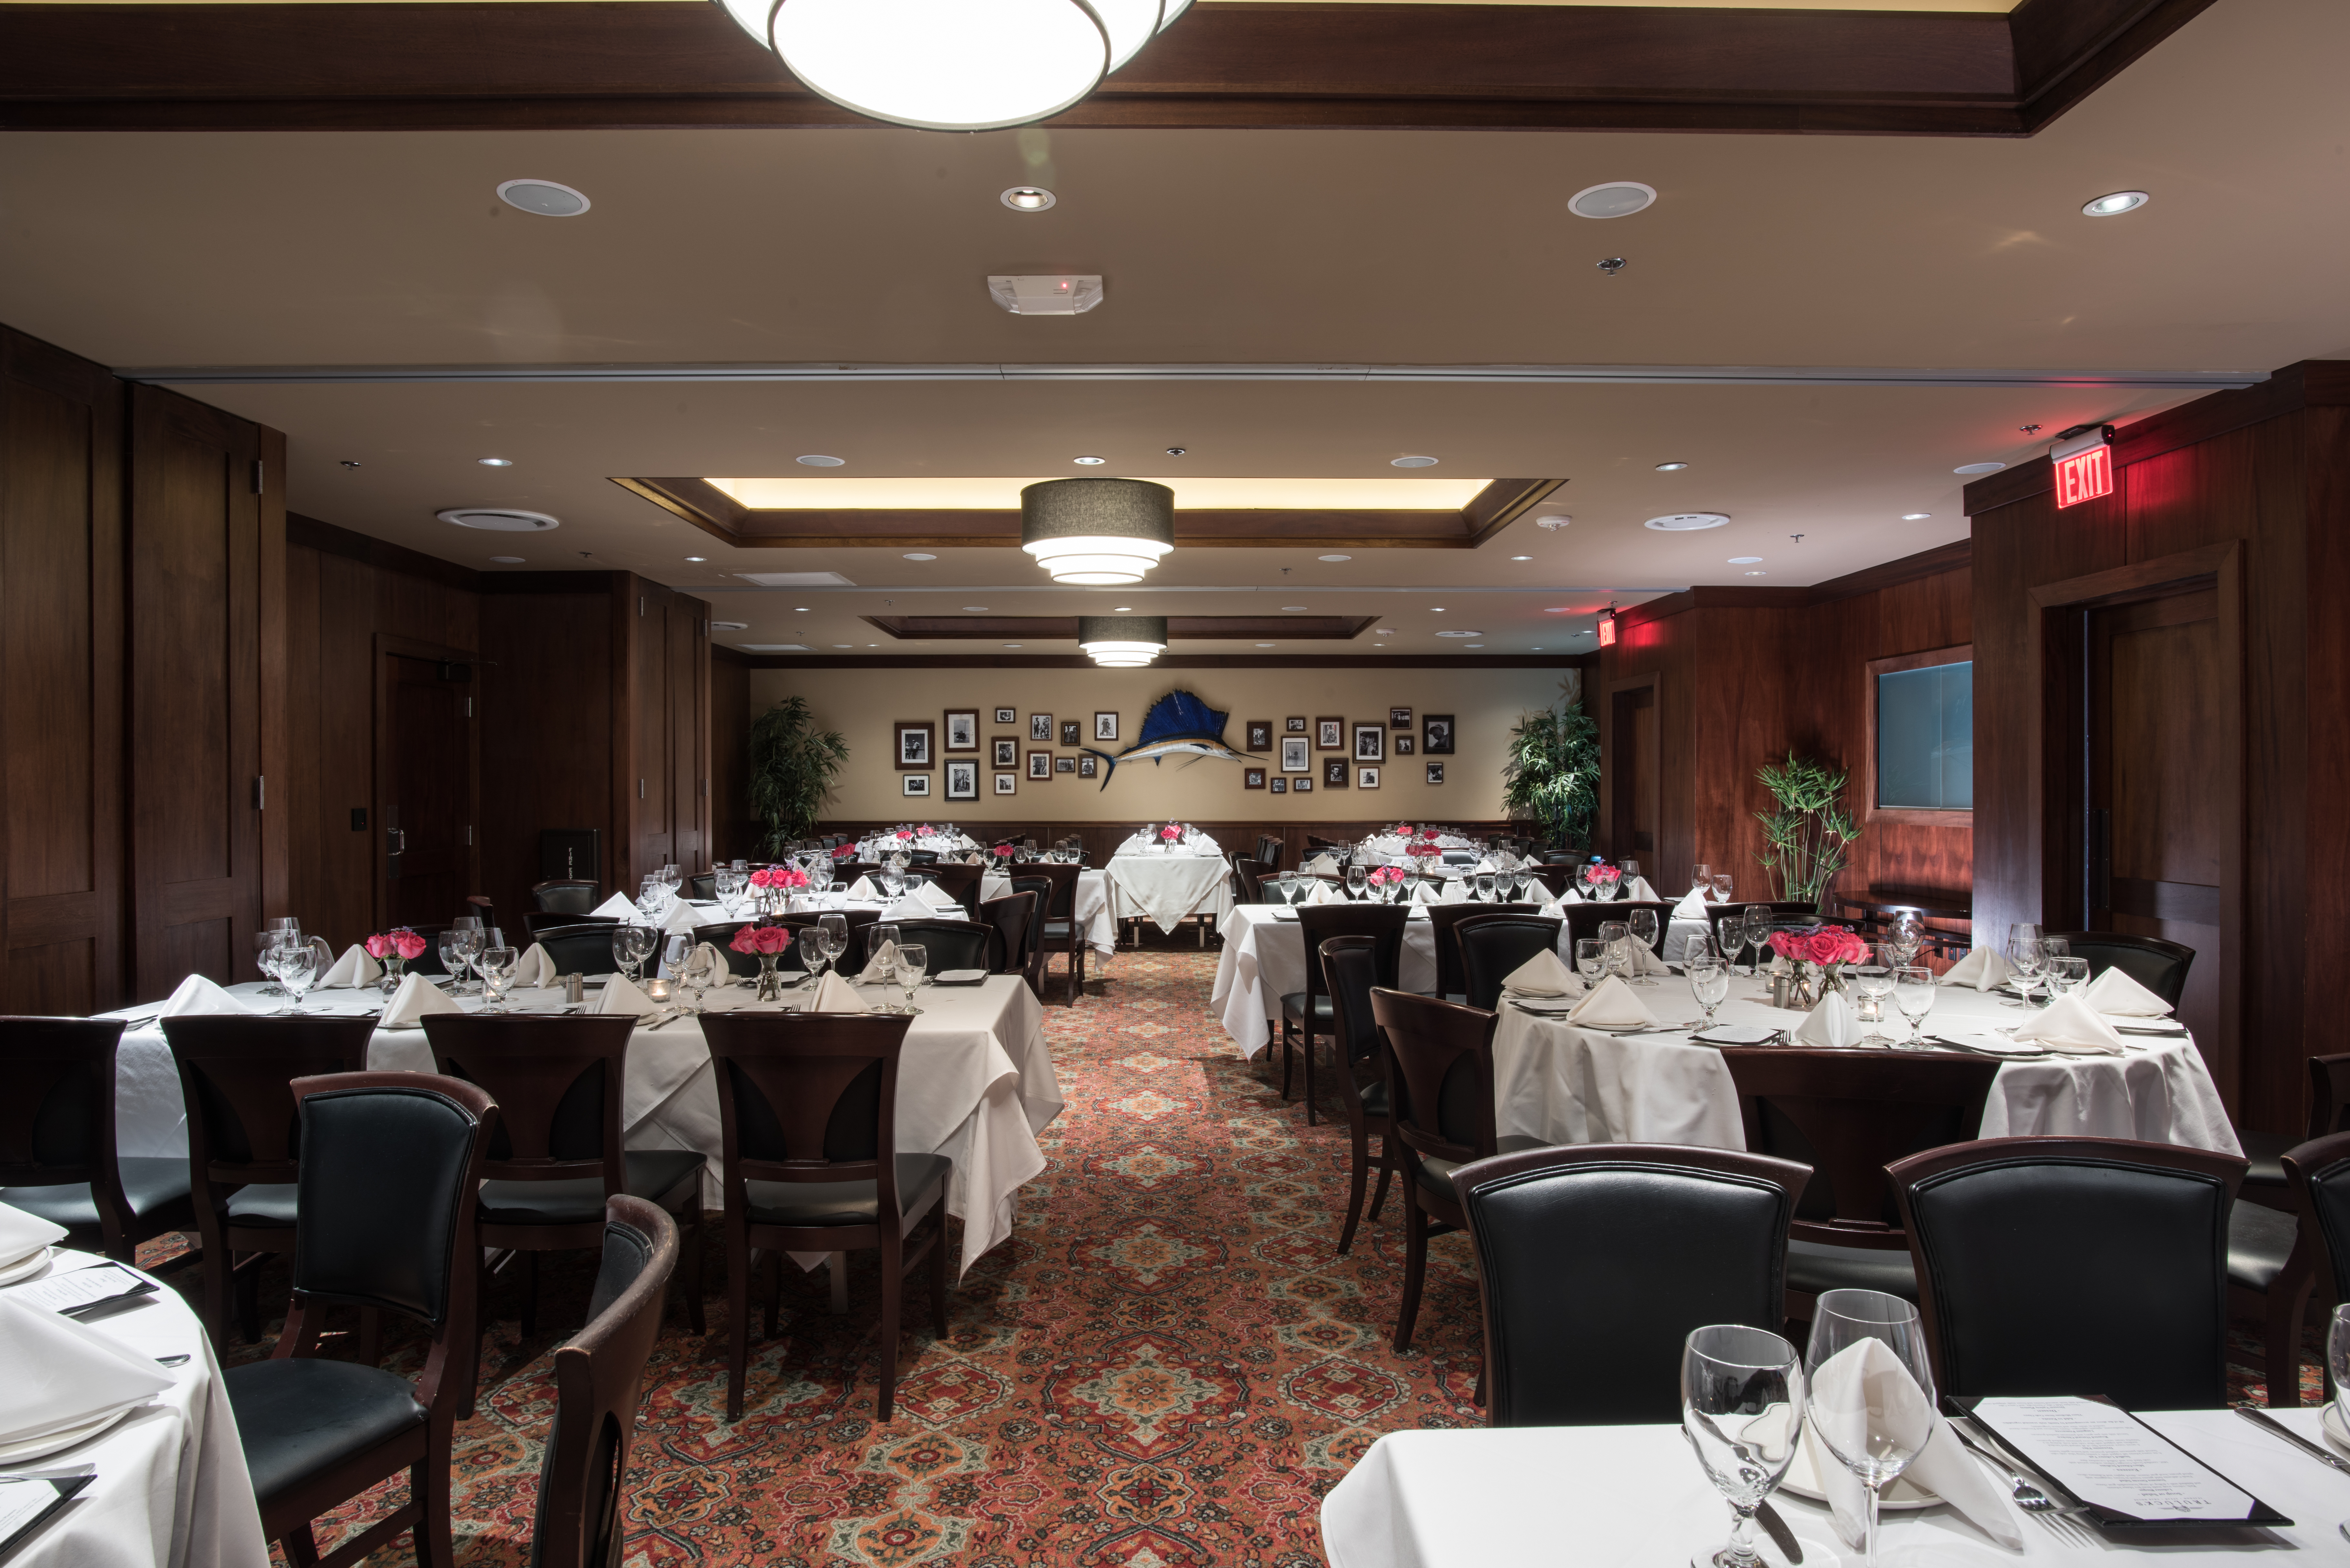 Truluck's Dallas private dining room Naples 2 & 3